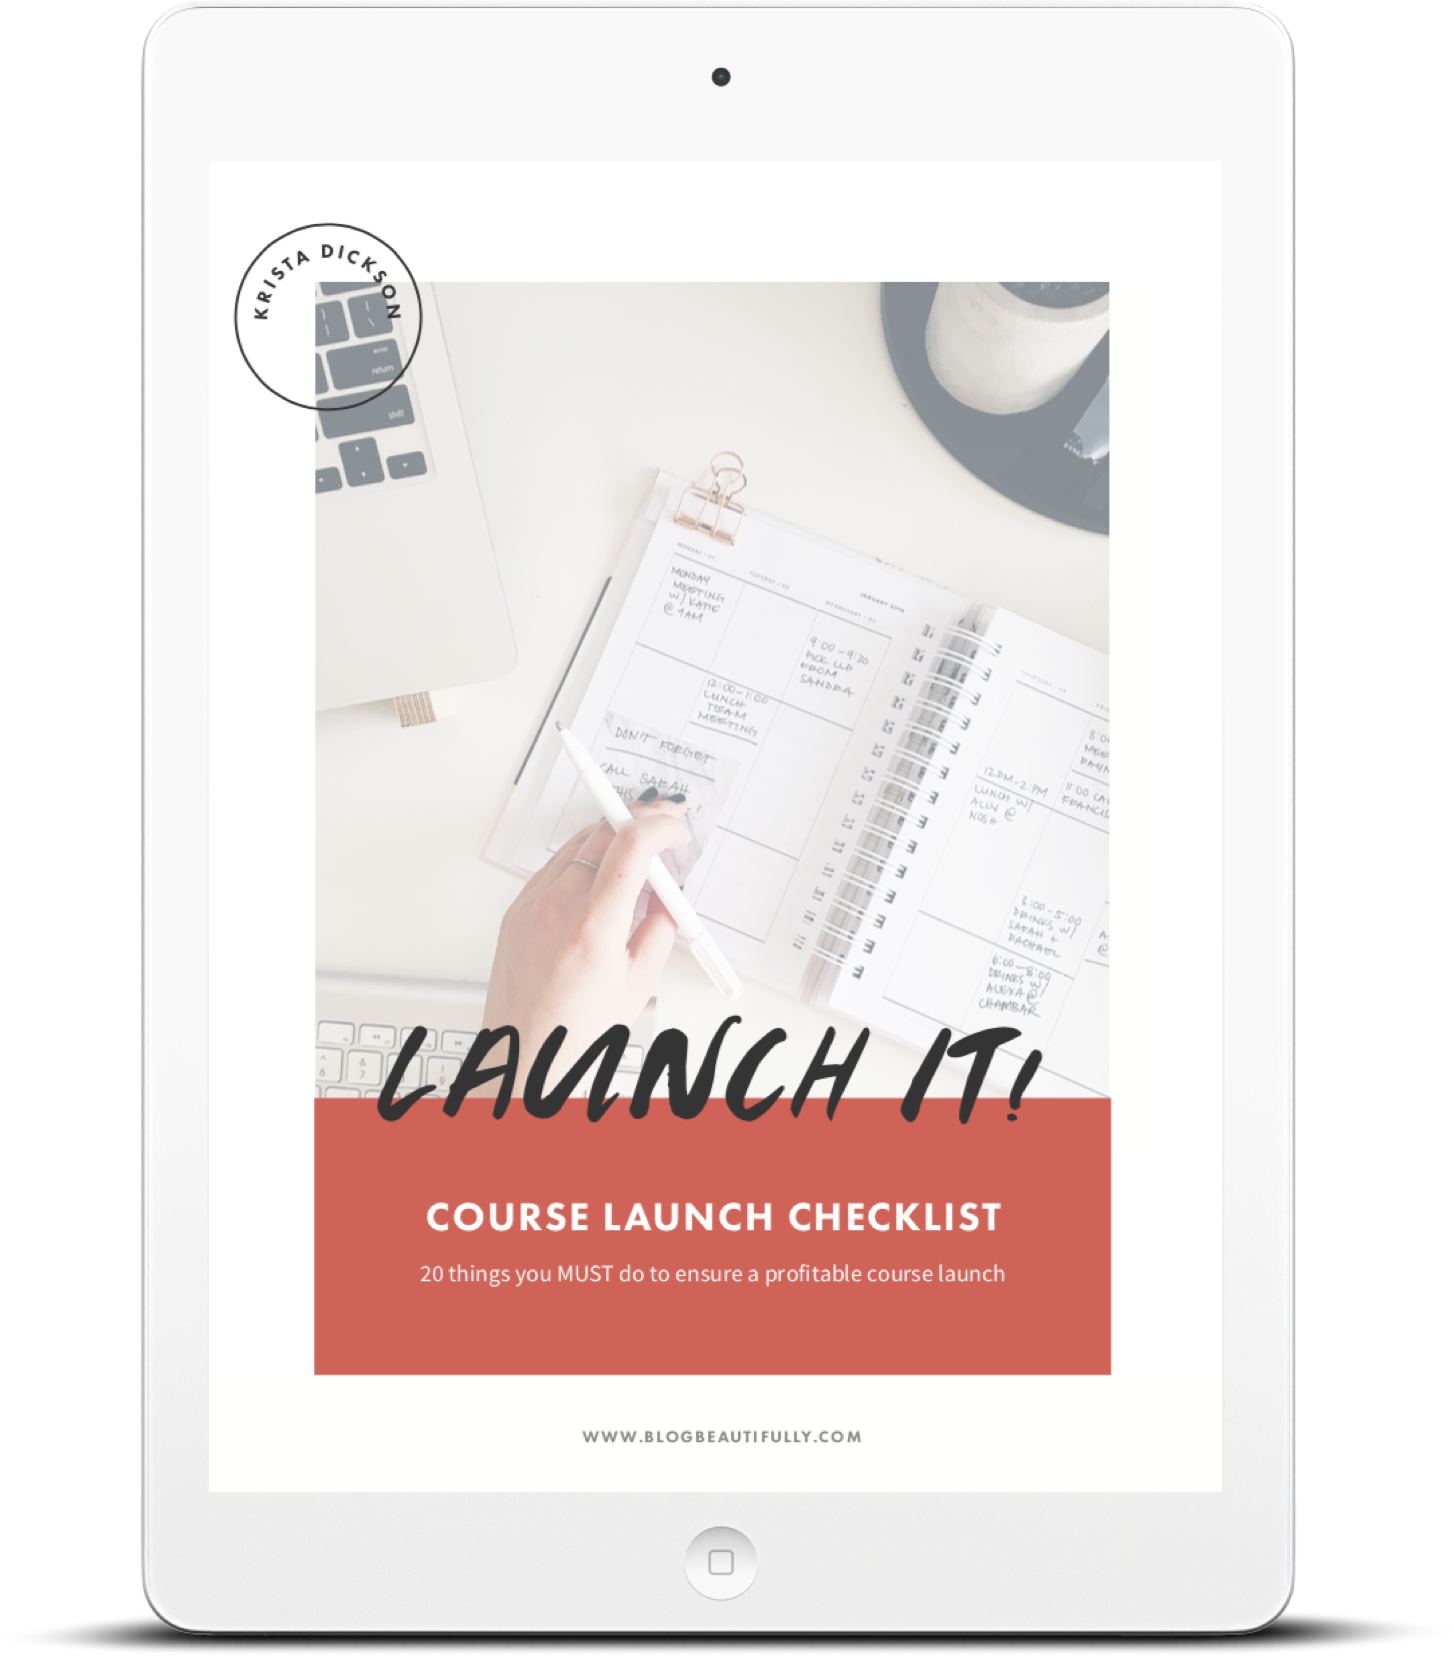 Course Launch Checklist ipad mockup.png